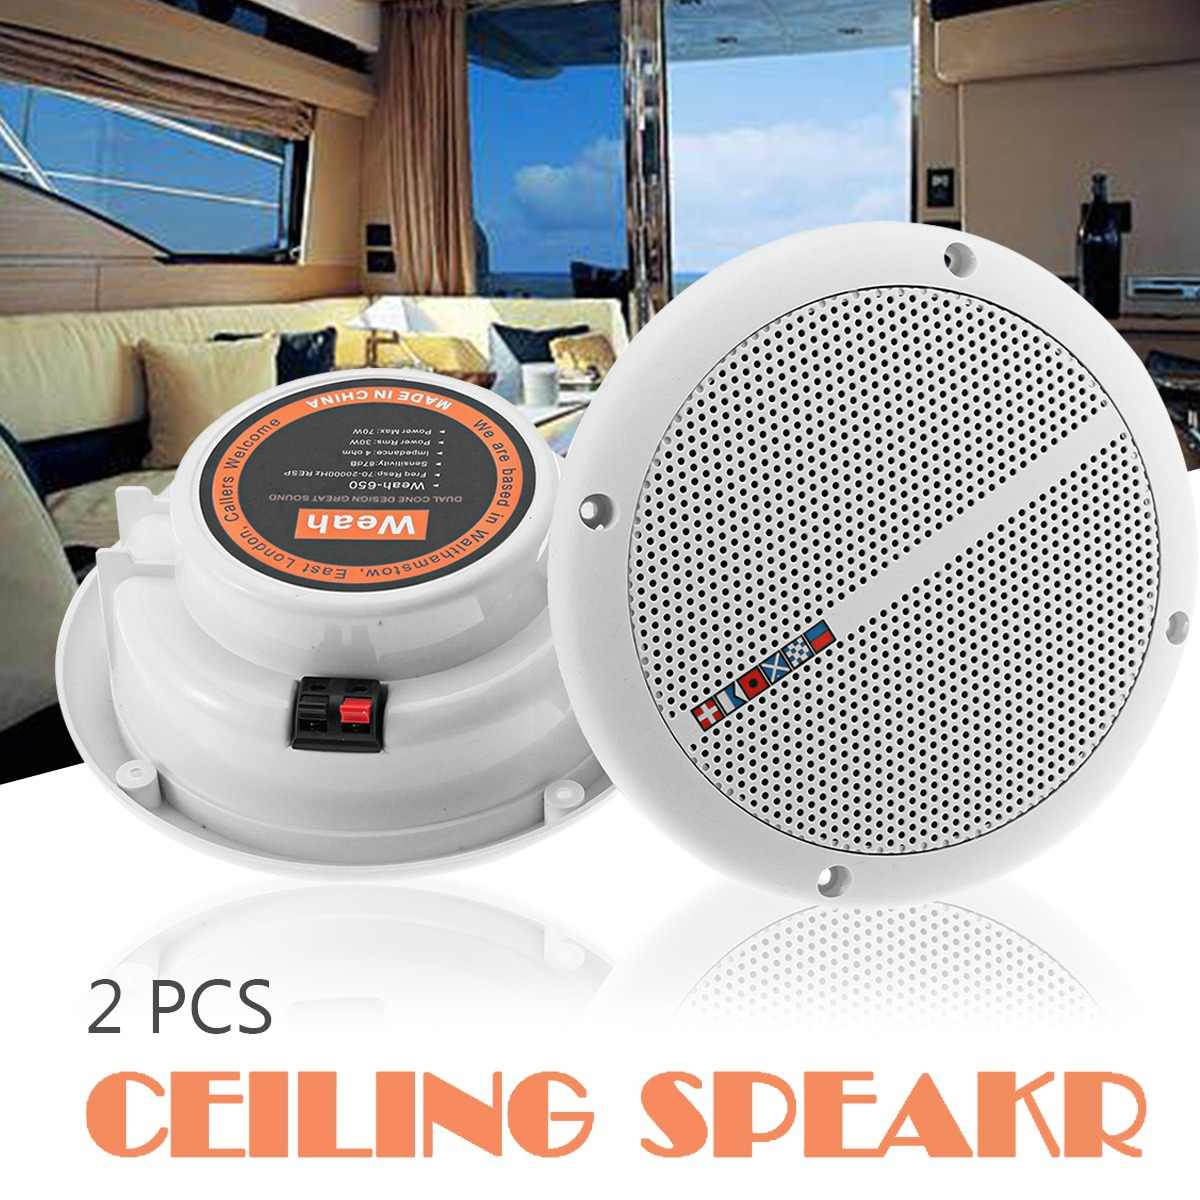 1Pair 25W Full Range Ceiling Wall Speakers Waterproof Loundspeaker Home Theater Bathroom Marine Boat Water Resistant Speaker